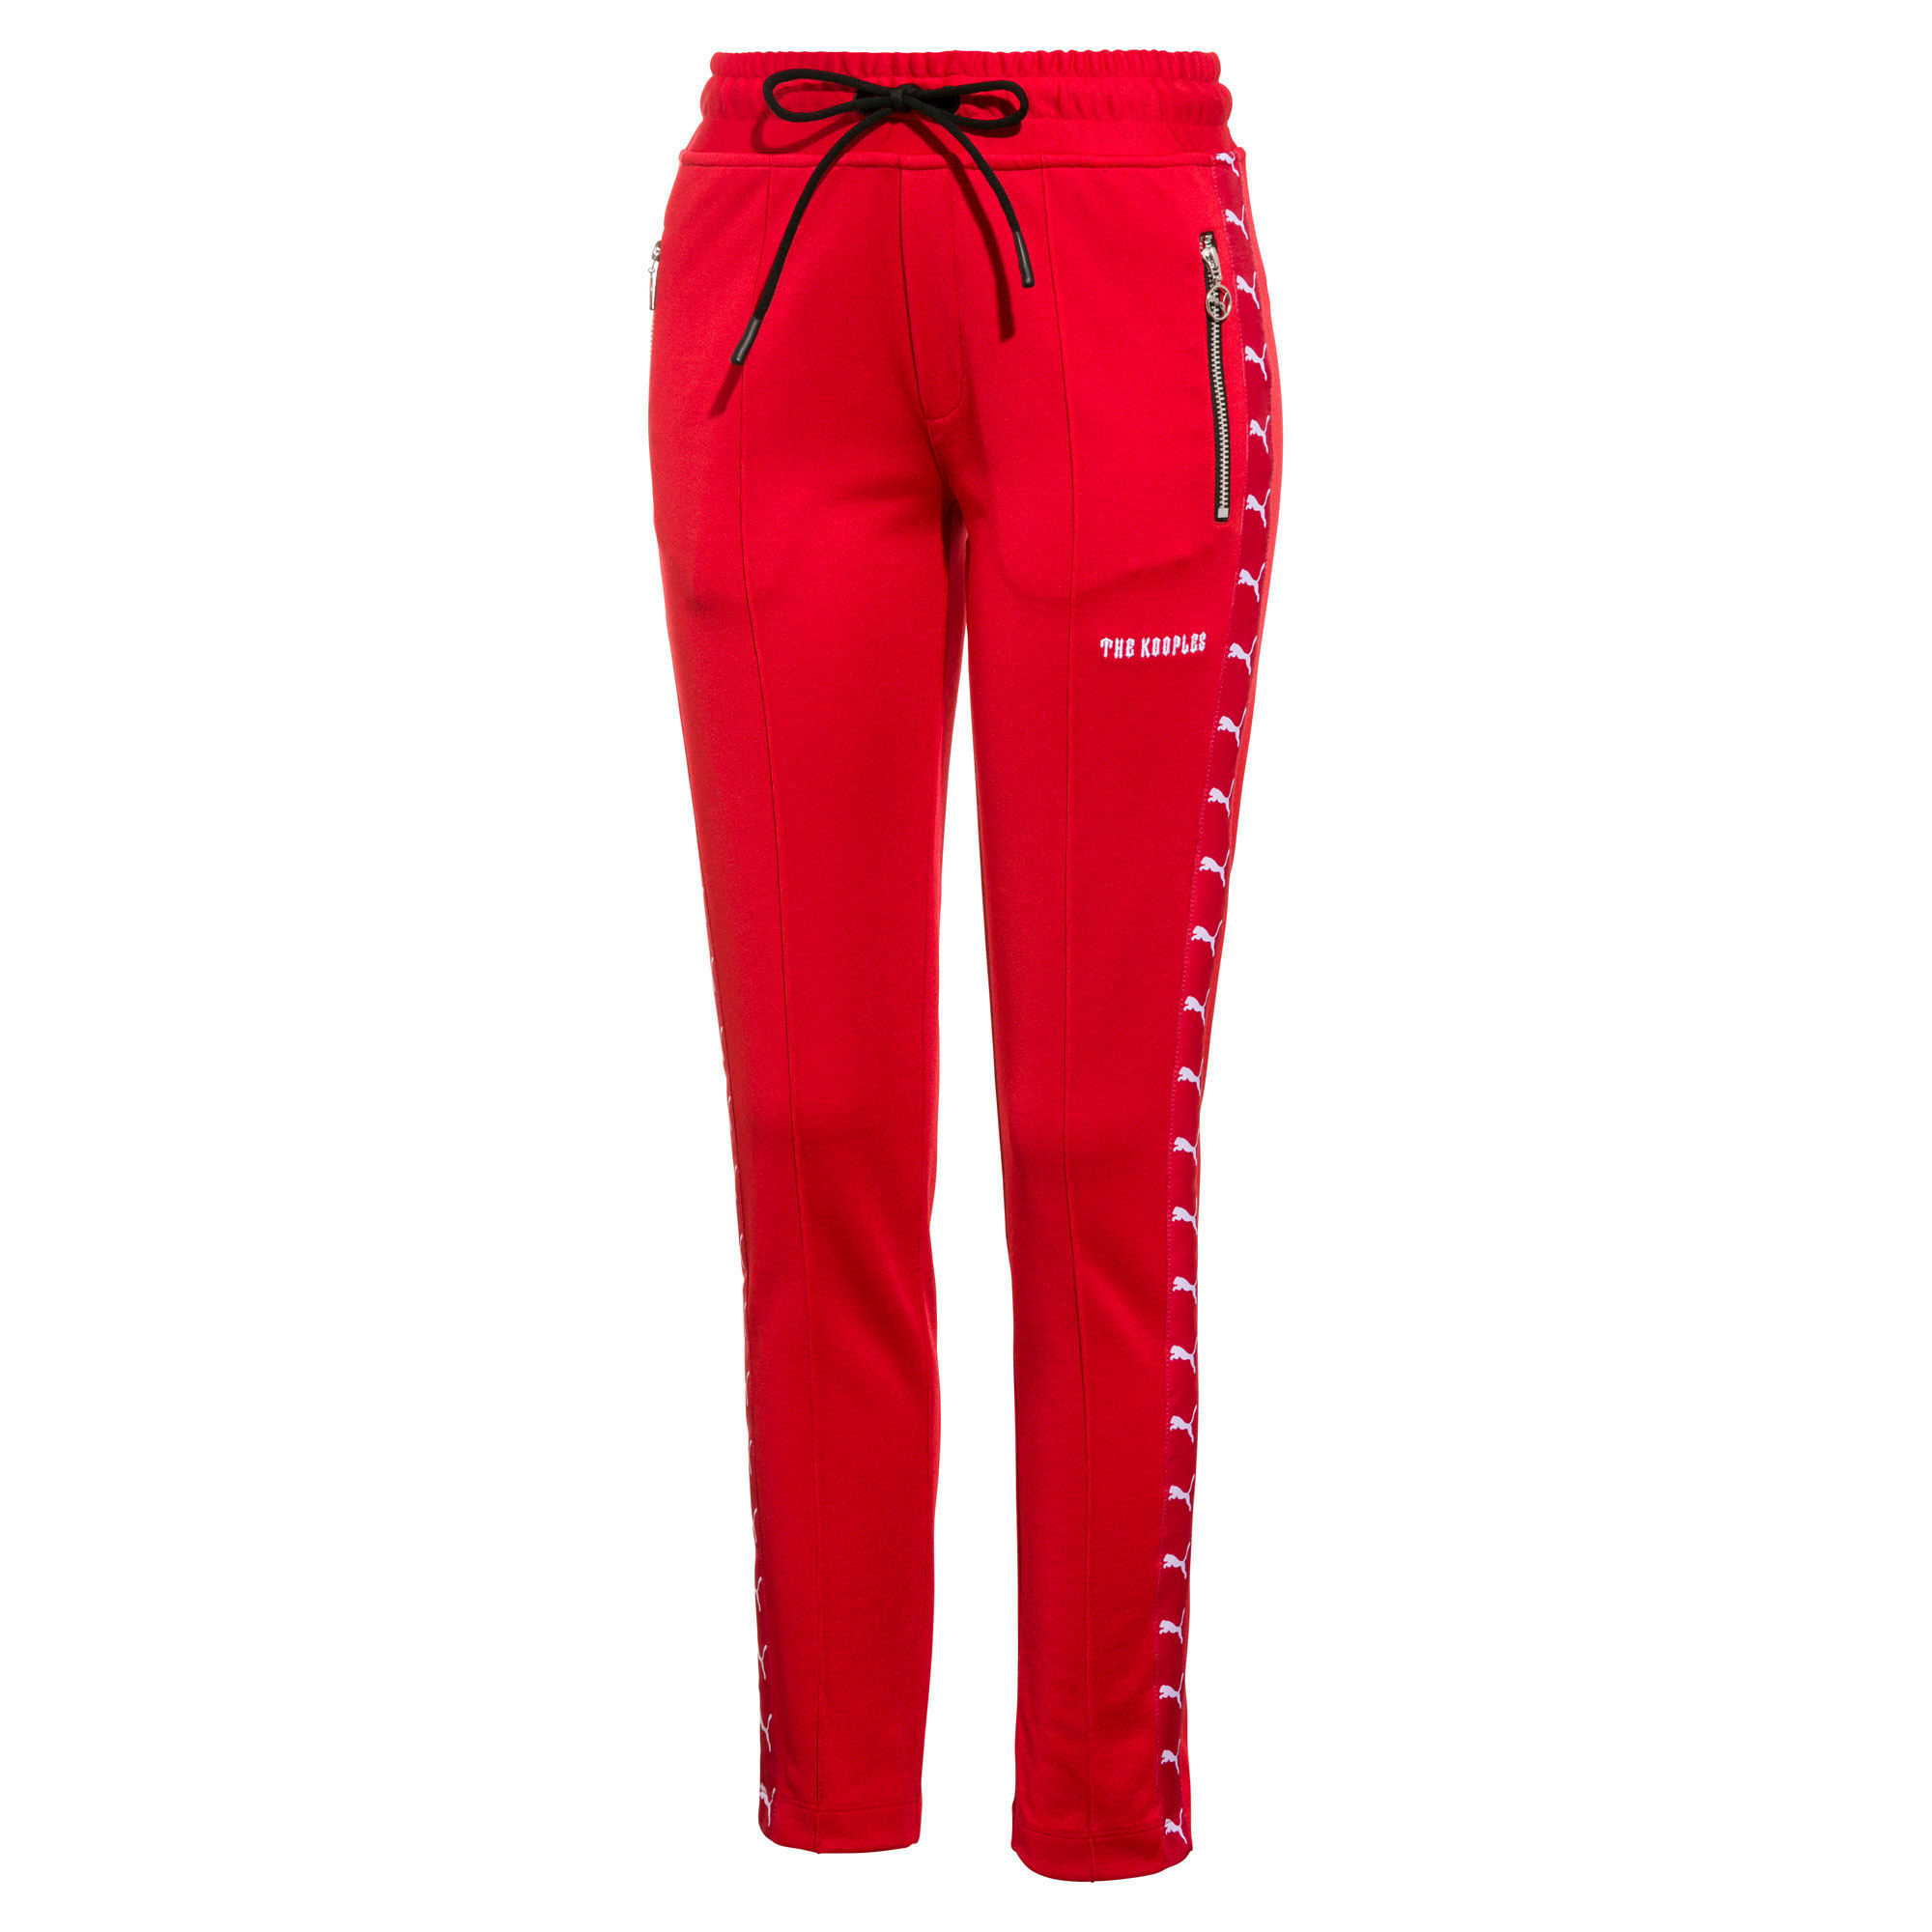 PUMA x THE KOOPLES Women's Track Pants, High Risk Red, large